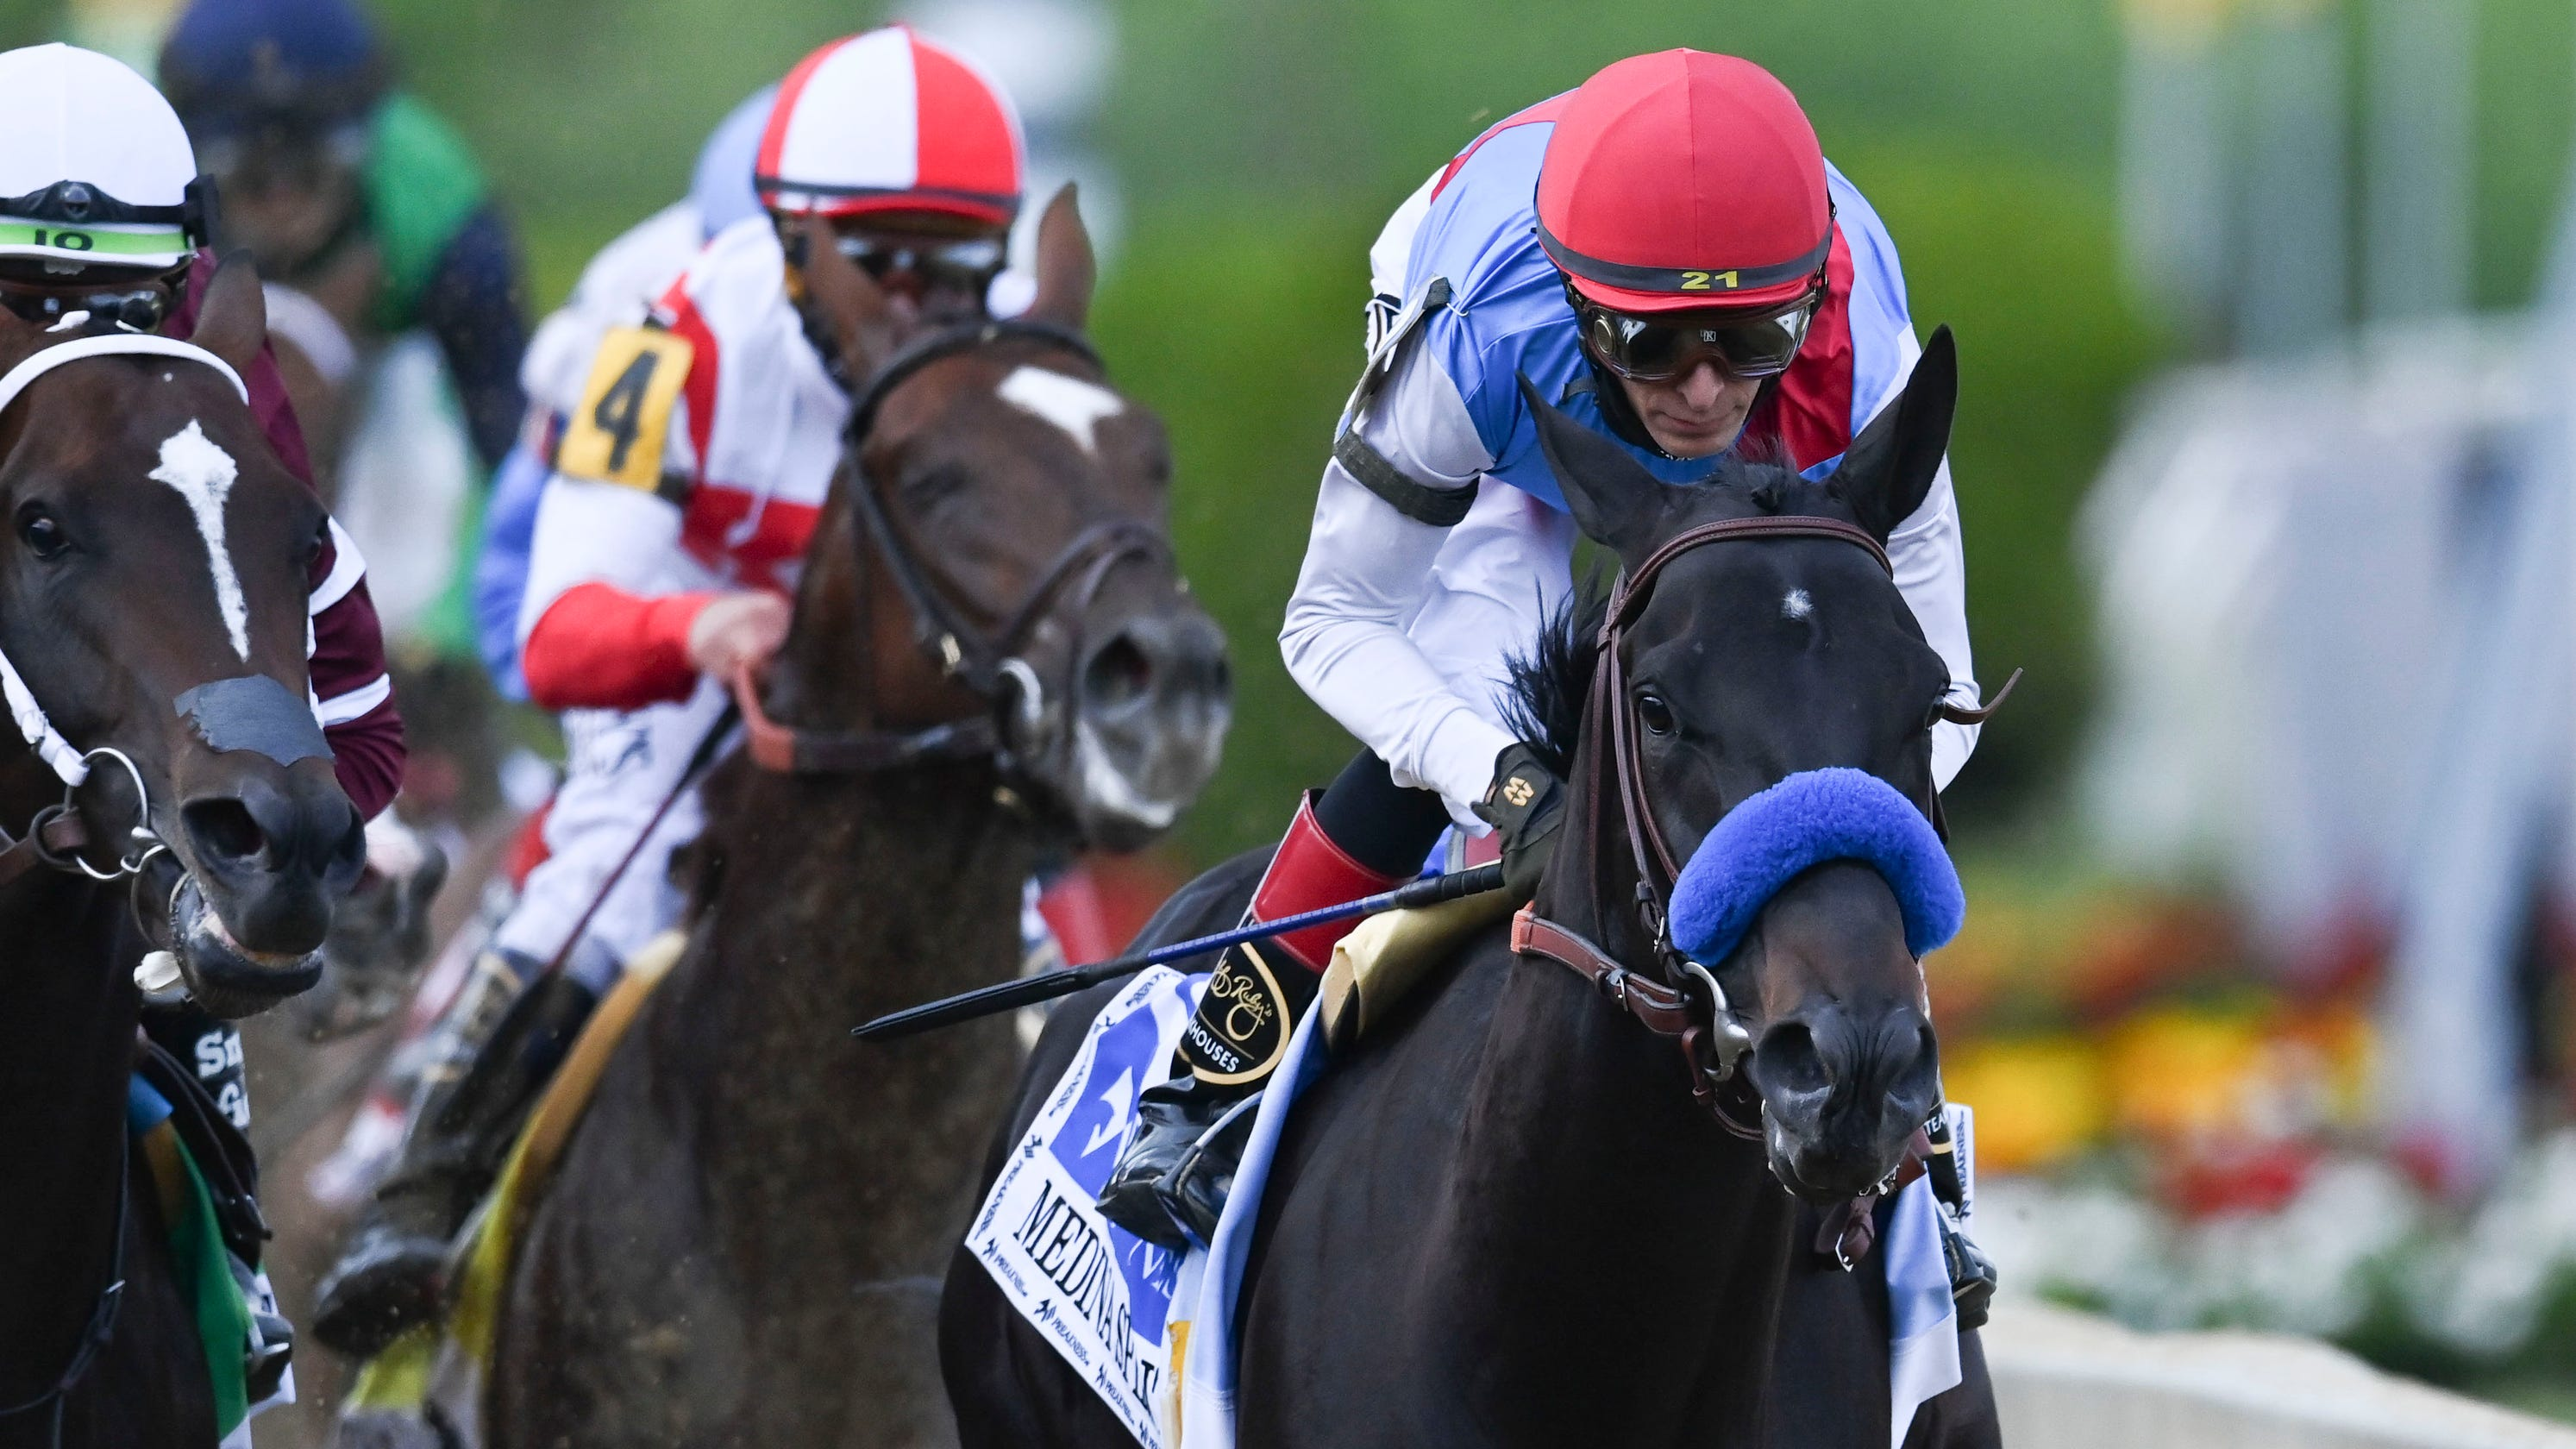 Opinion: Horse racing can breathe a sigh of relief as Medina Spirit's Triple Crown bid ends